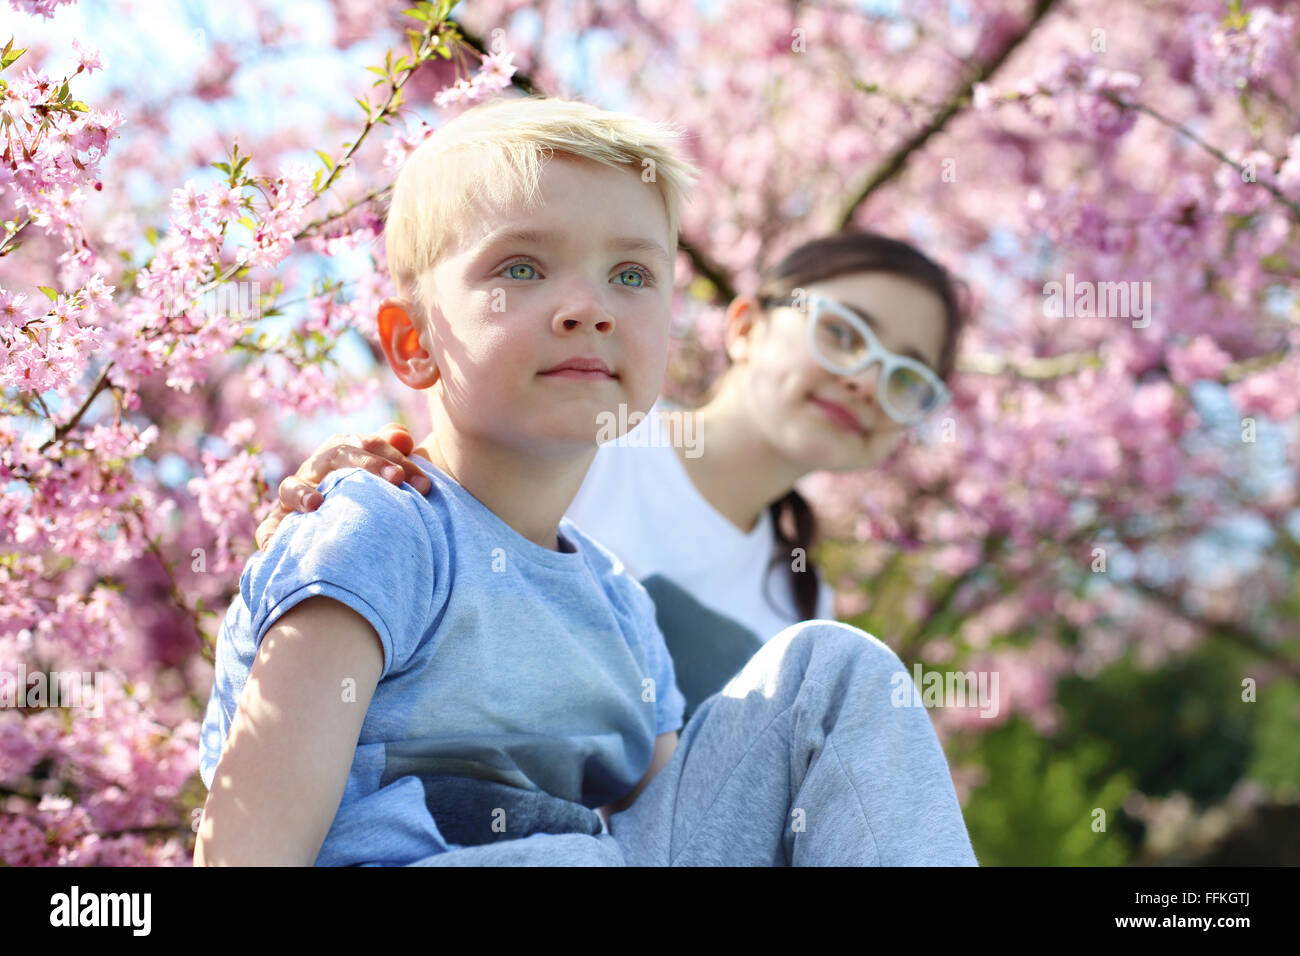 Siblings. Happy child. Boy sitting under a tree, the girl in the backgroun - Stock Image